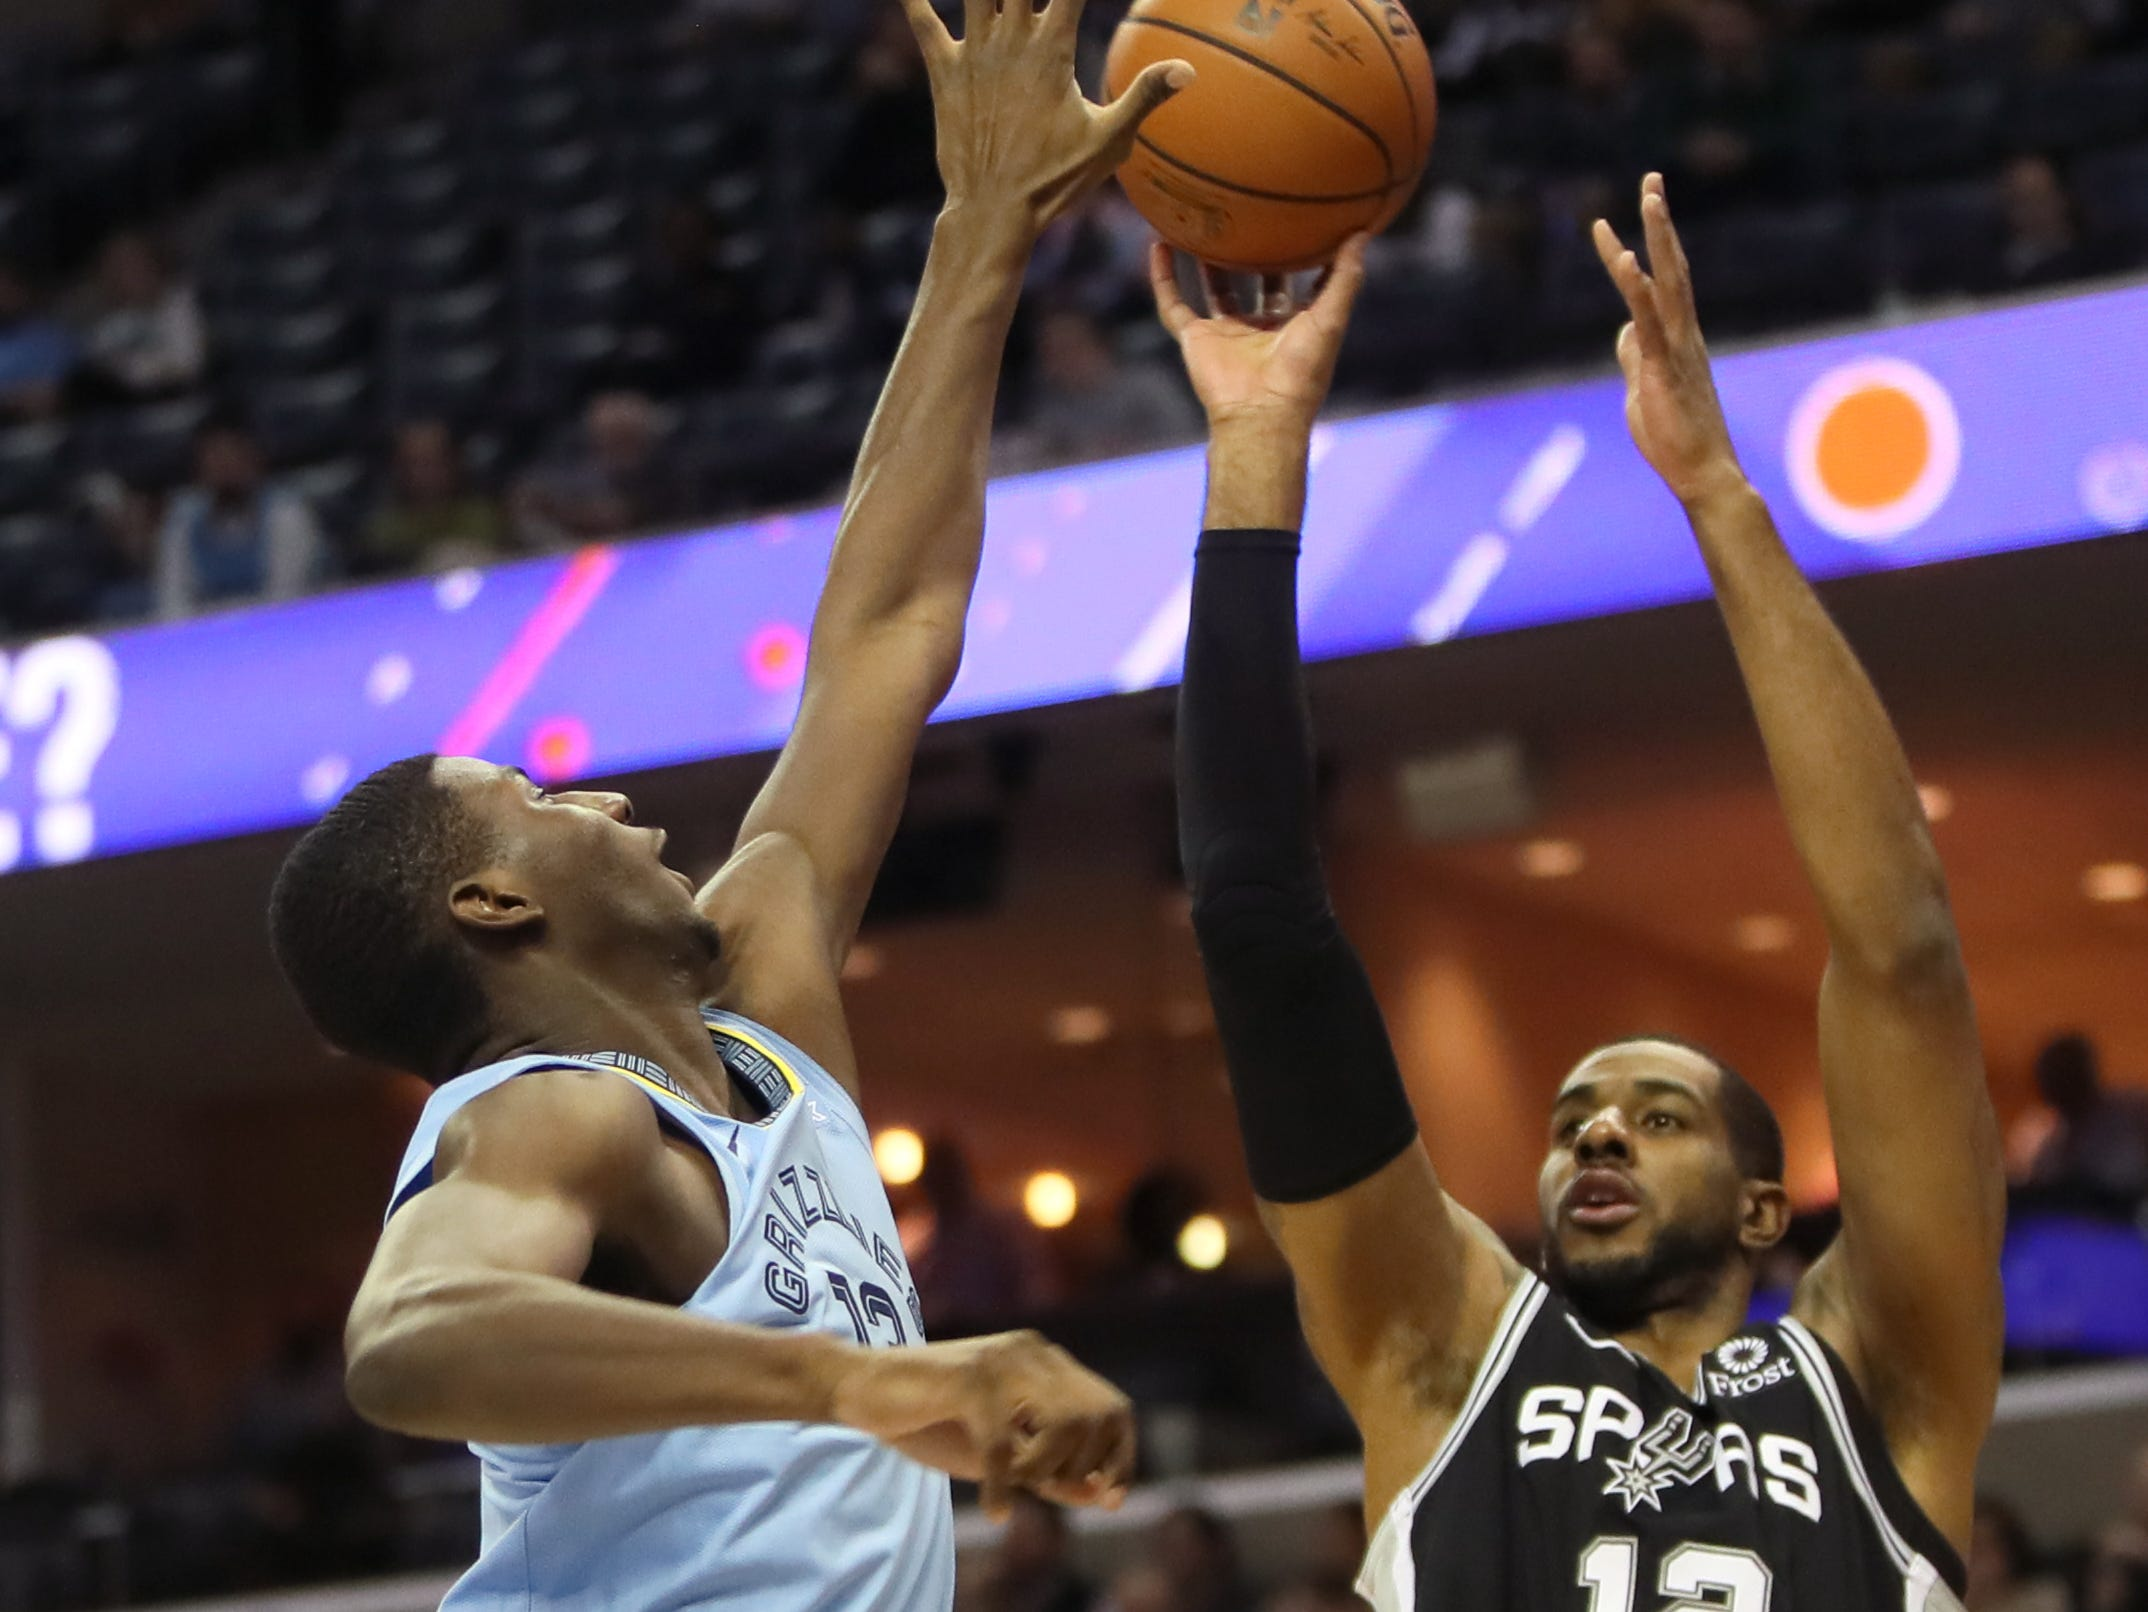 Memphis Grizzlies forward Jaren Jackson Jr. defends a shot by San Antonio Spurs forward LaMarcus Aldridge during their game at the FedExForum on Wednesday, Jan. 9, 2019.